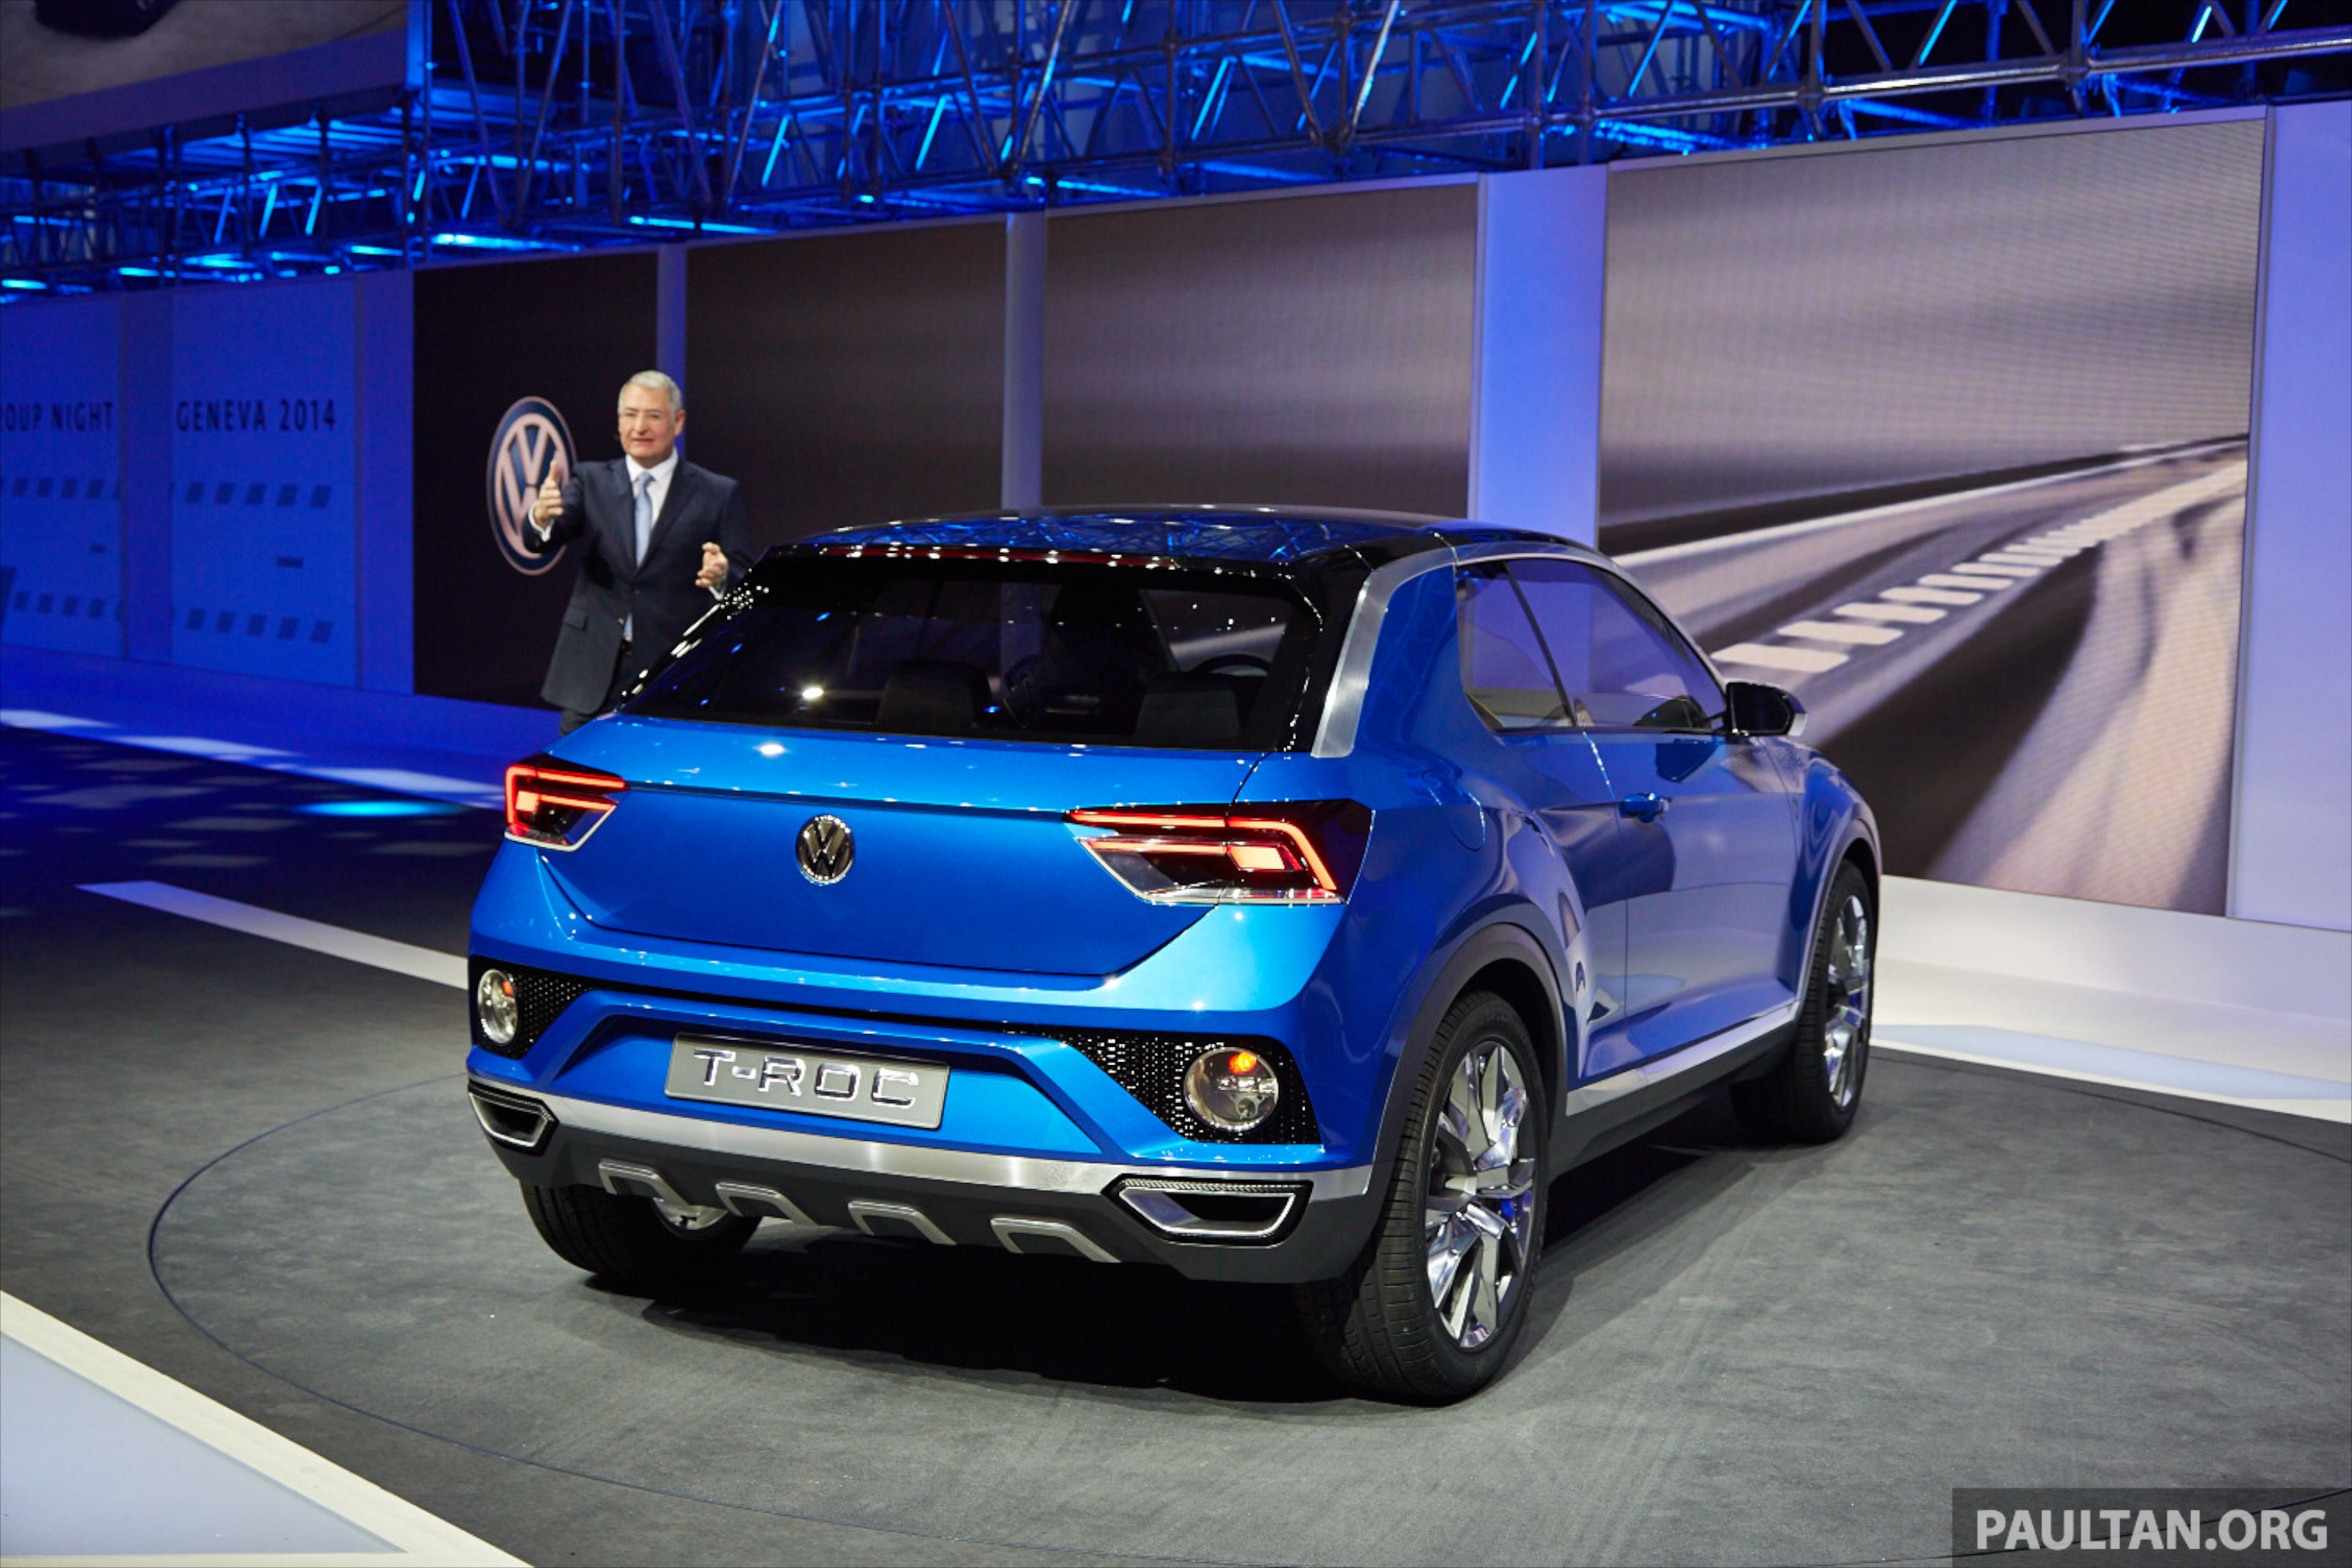 volkswagen t roc concept previews upcoming suv paul tan image 232476. Black Bedroom Furniture Sets. Home Design Ideas